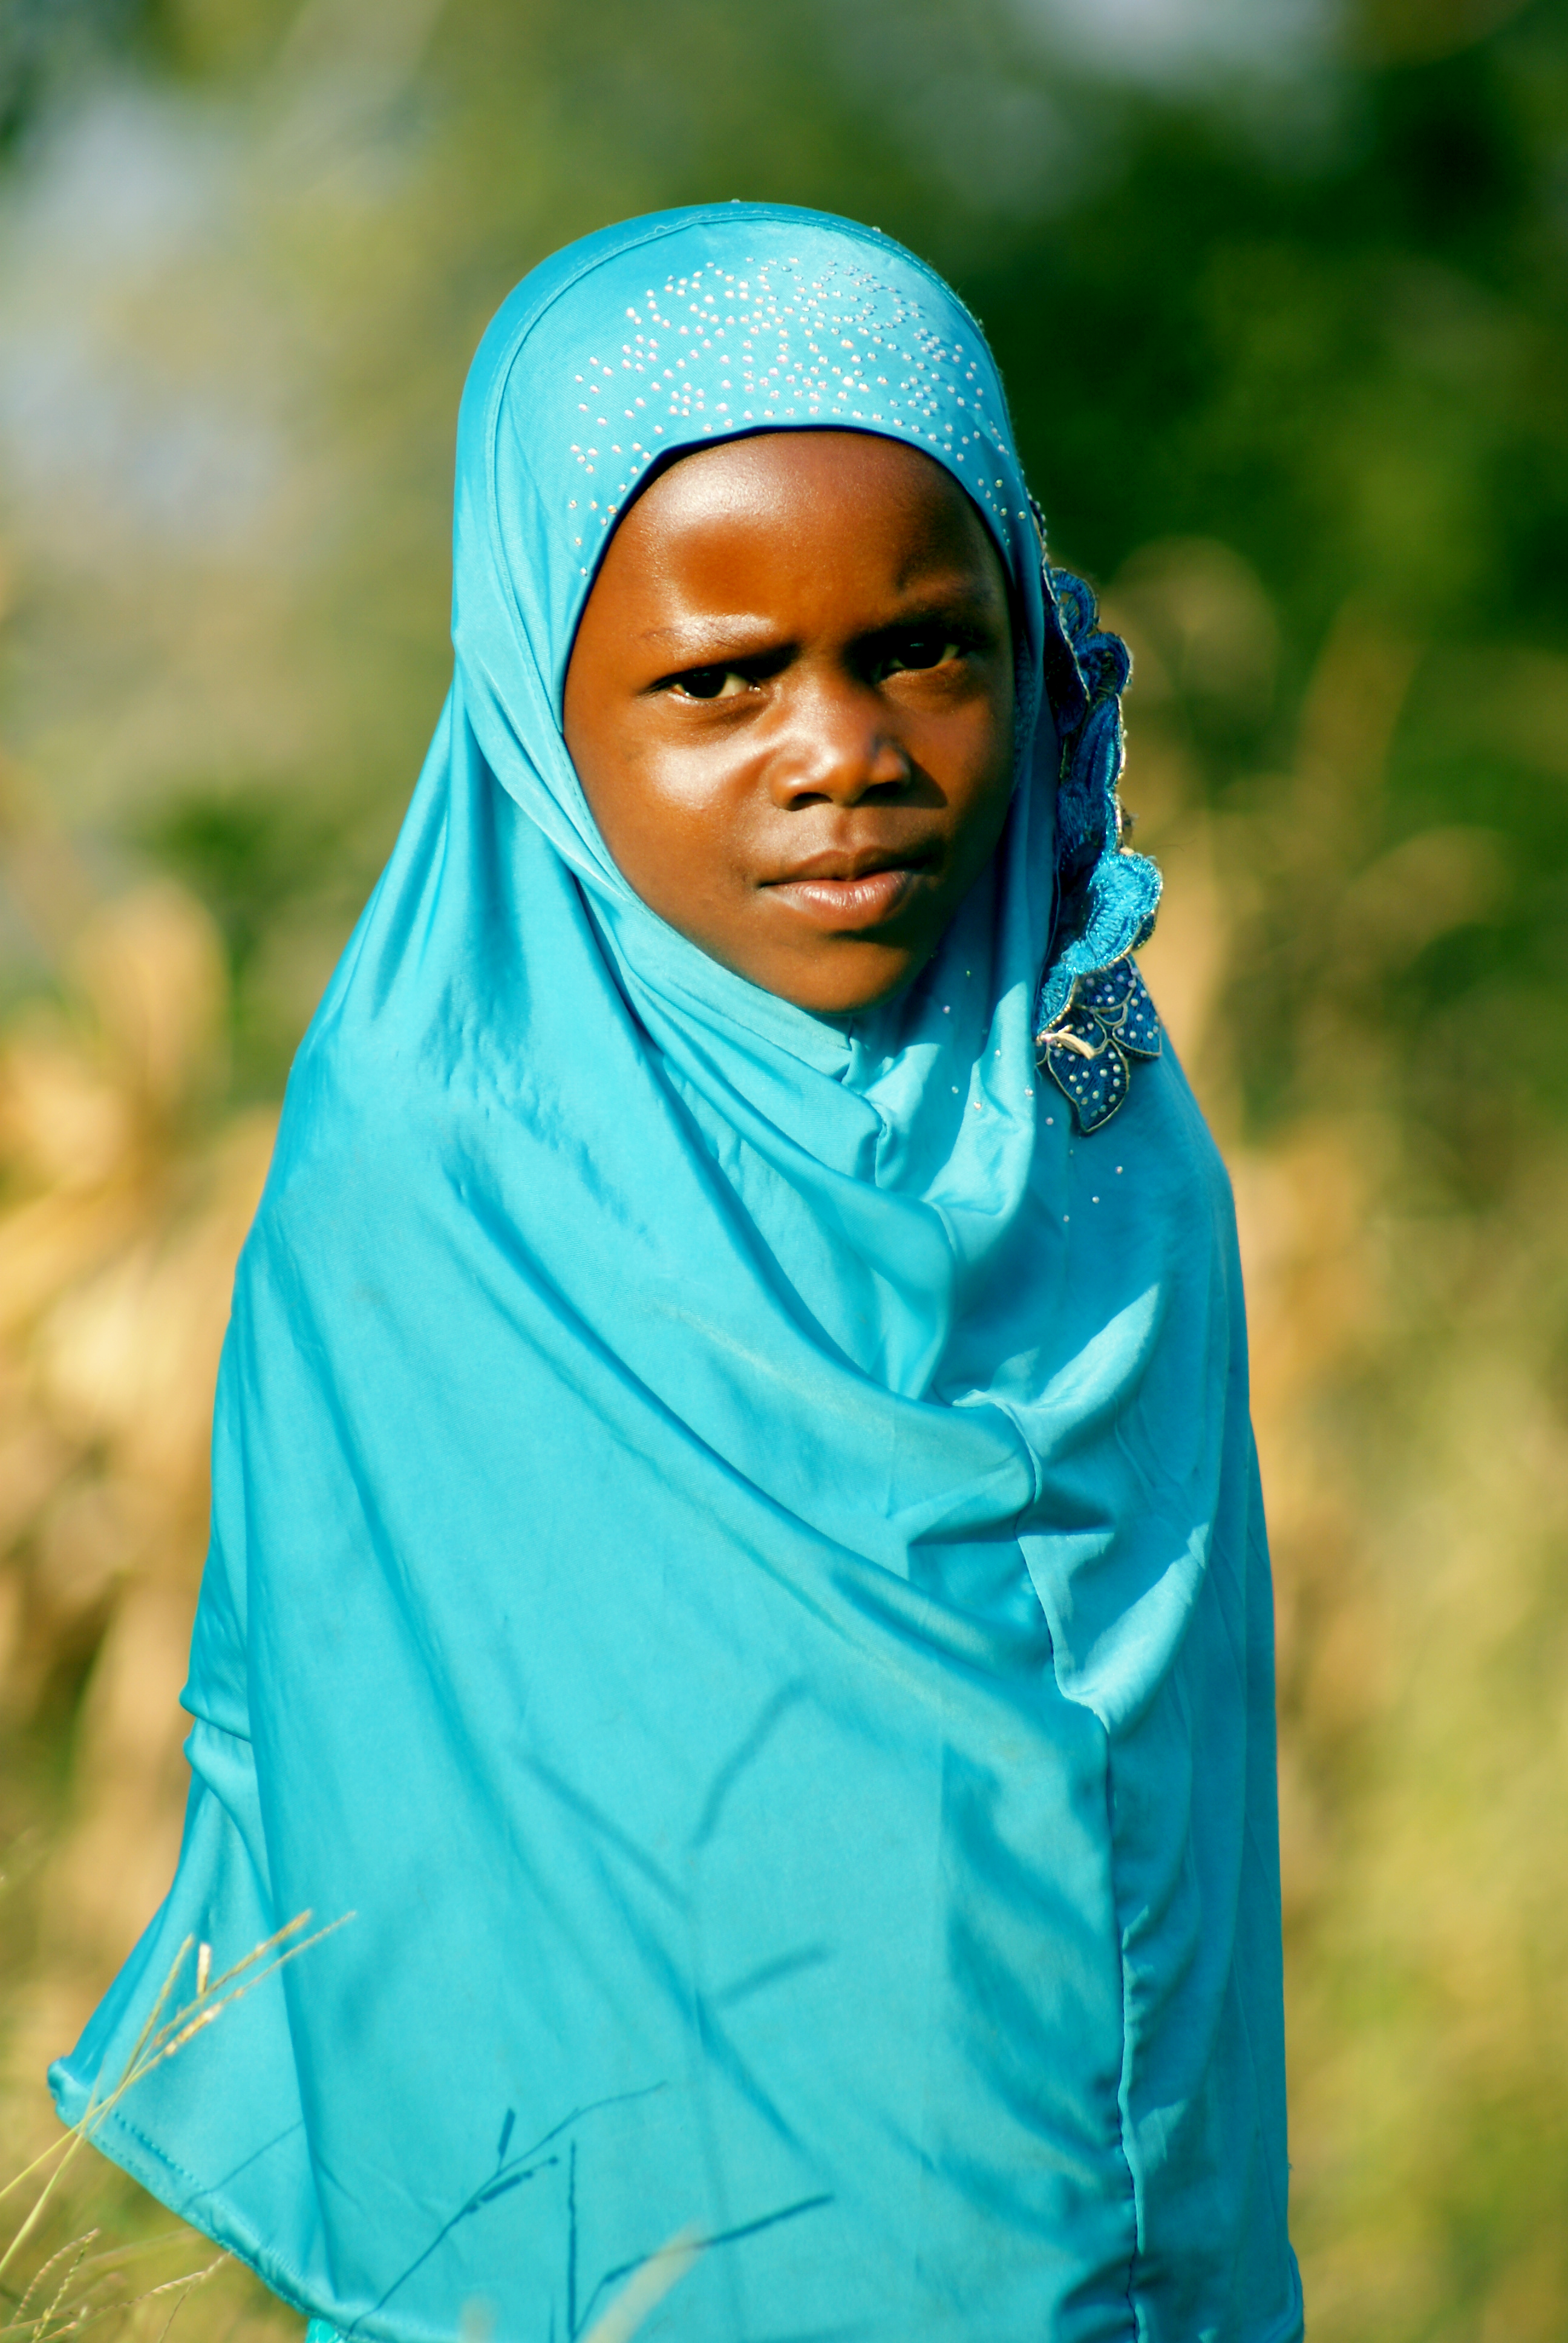 Selective Focus Photography of a Person Wearing Blue Hijab